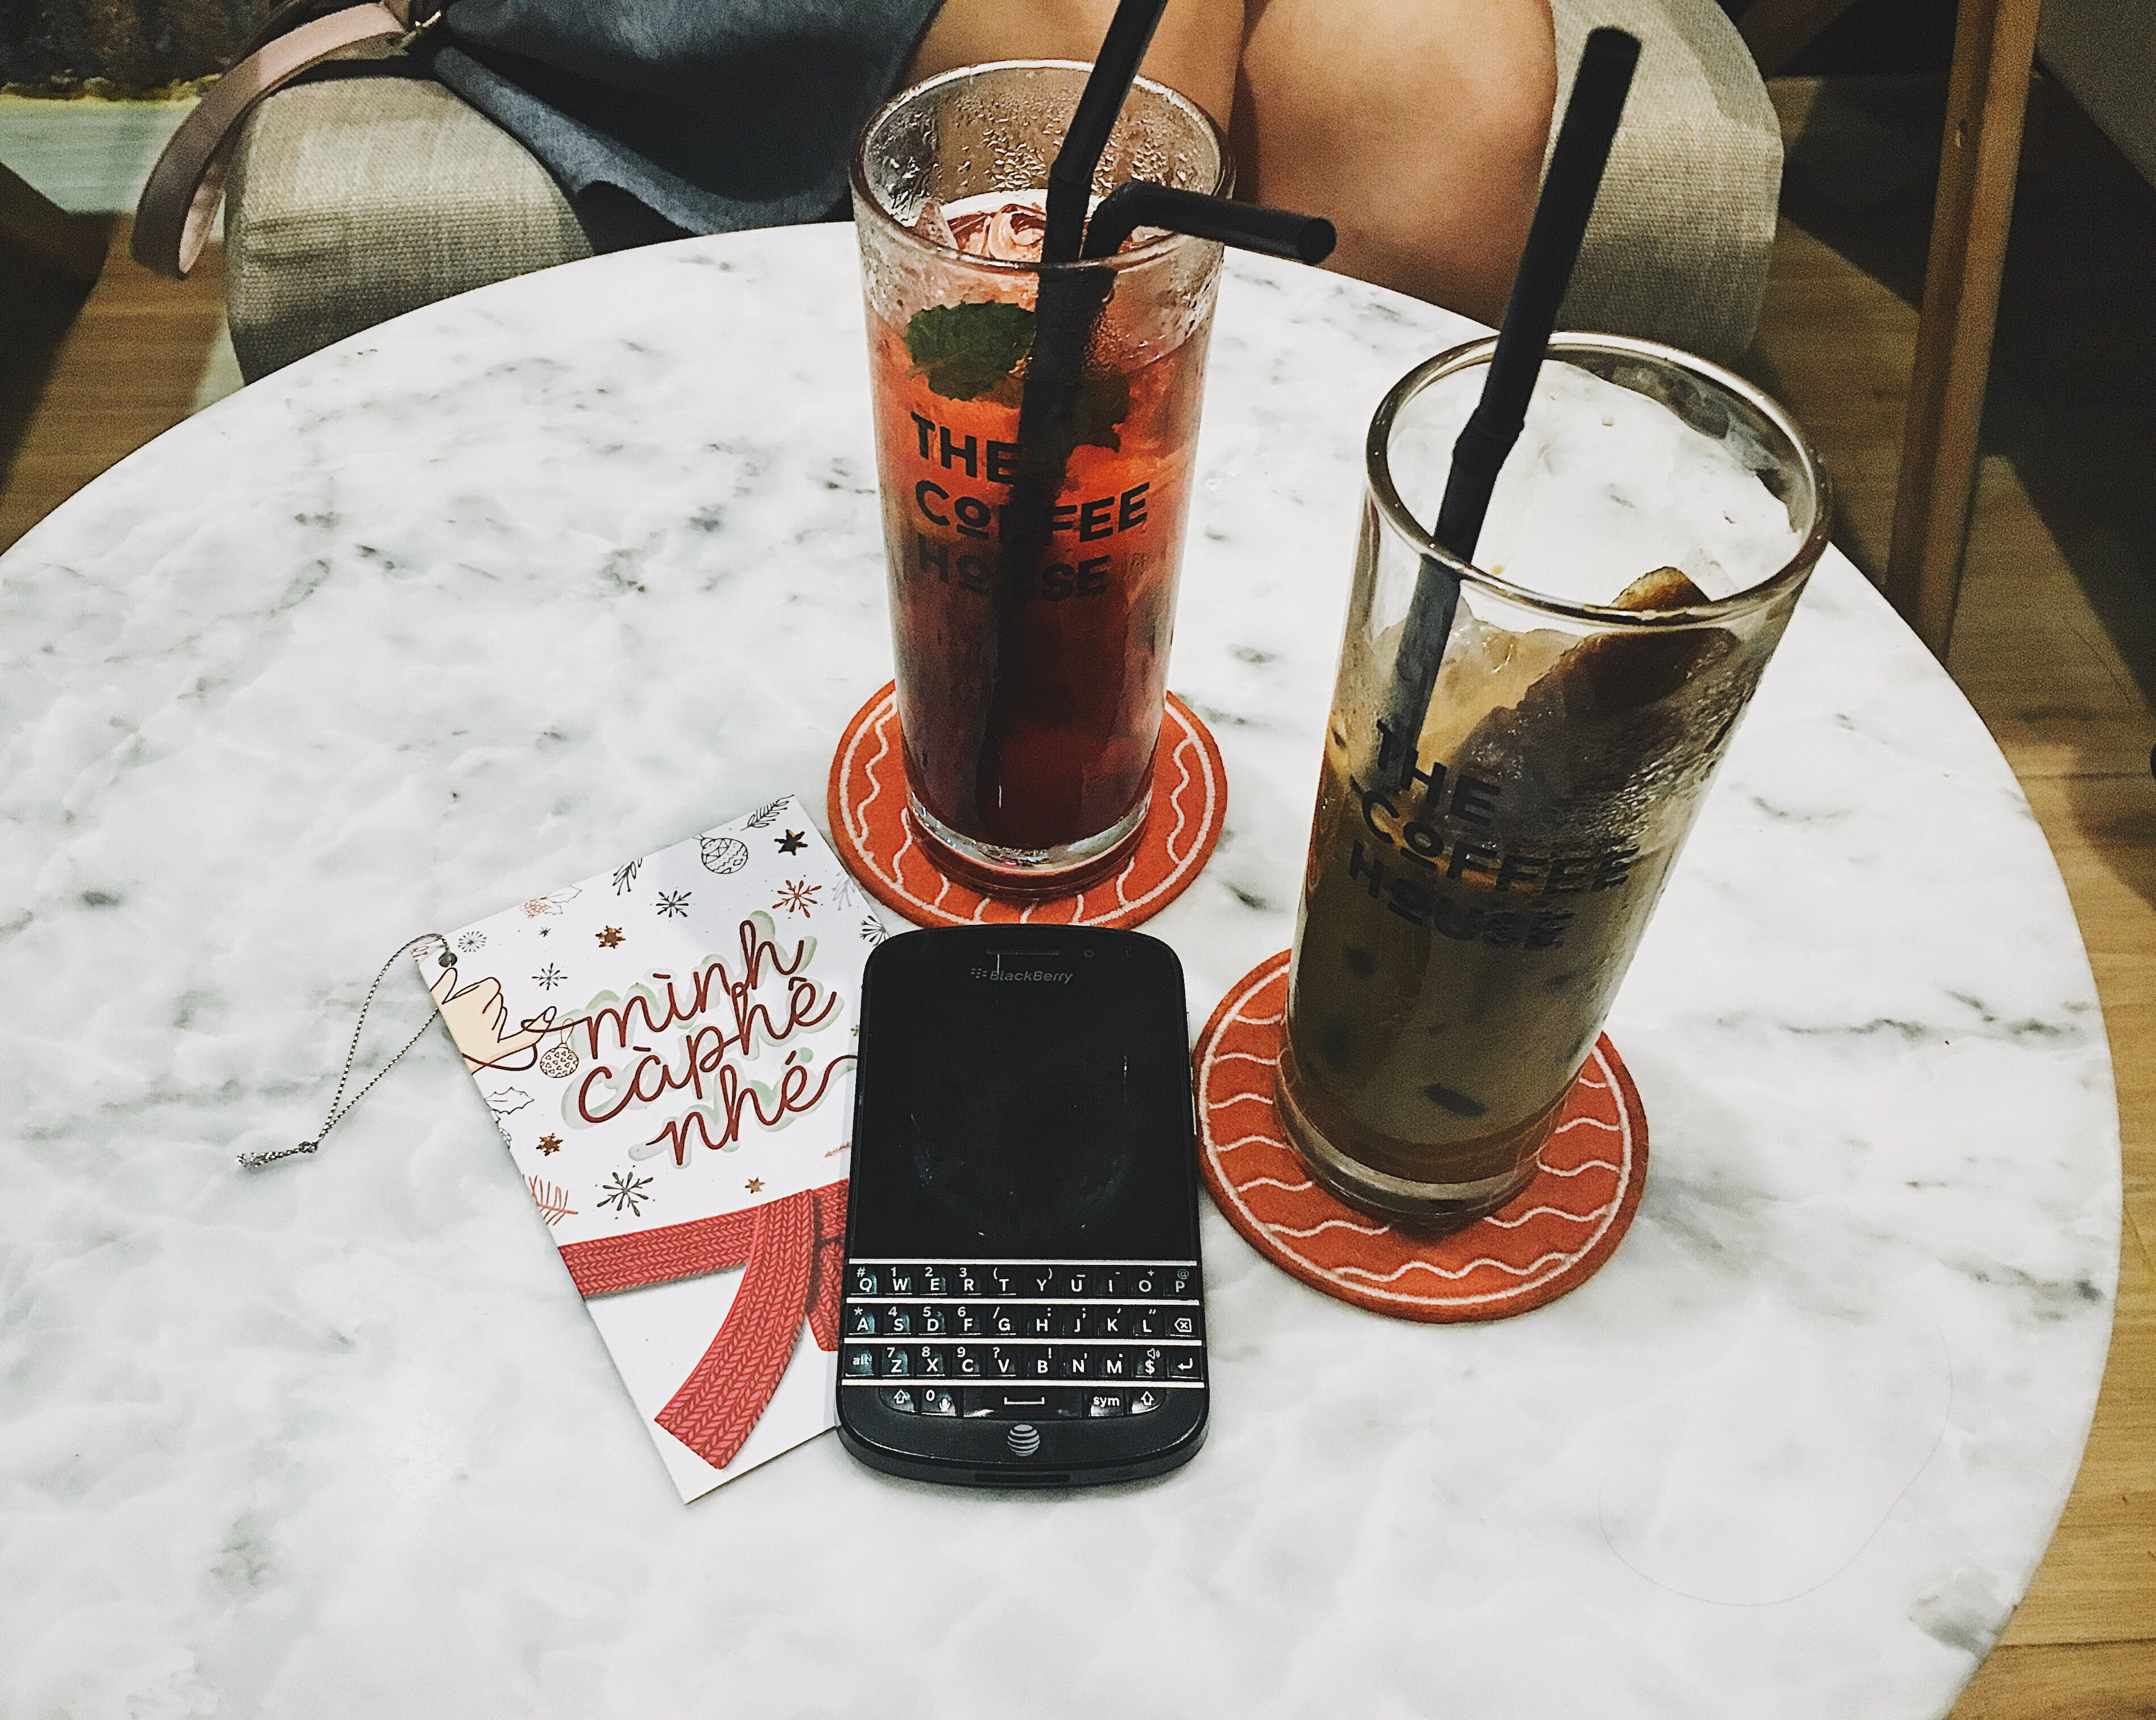 Photo of Blackberry Phone Beside Two Tall Glasses